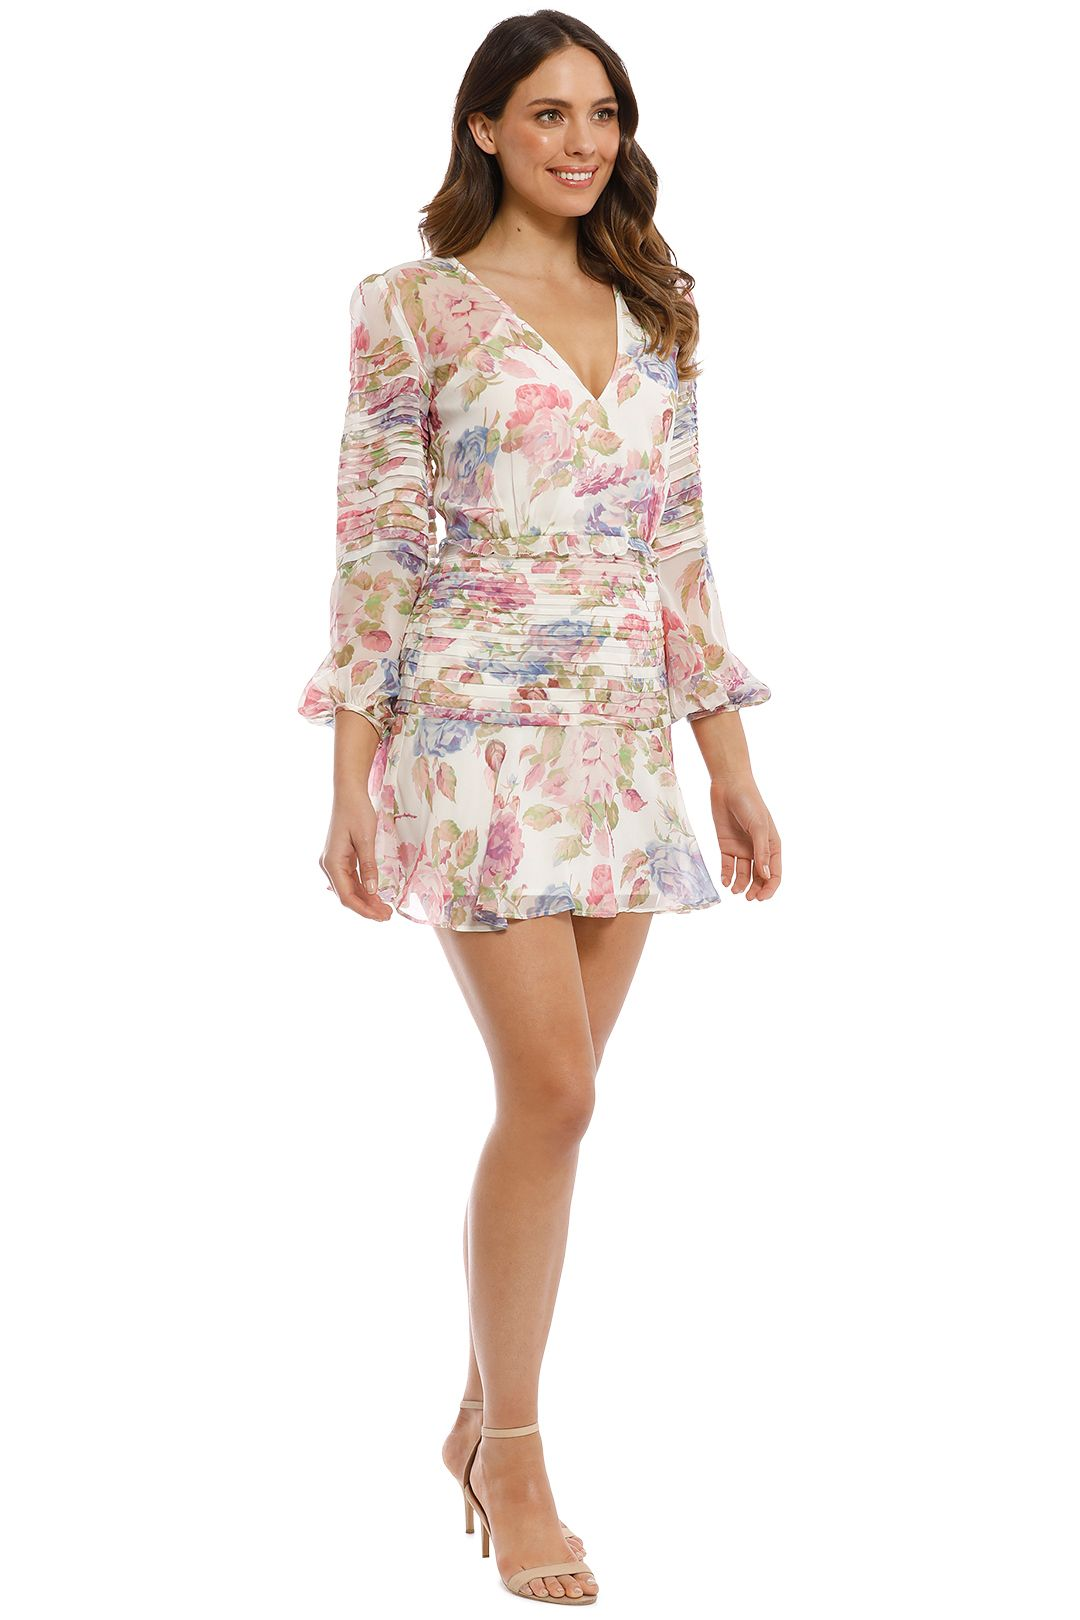 Talulah - Epiphany LS Mini Dress - Ivory Floral - Side